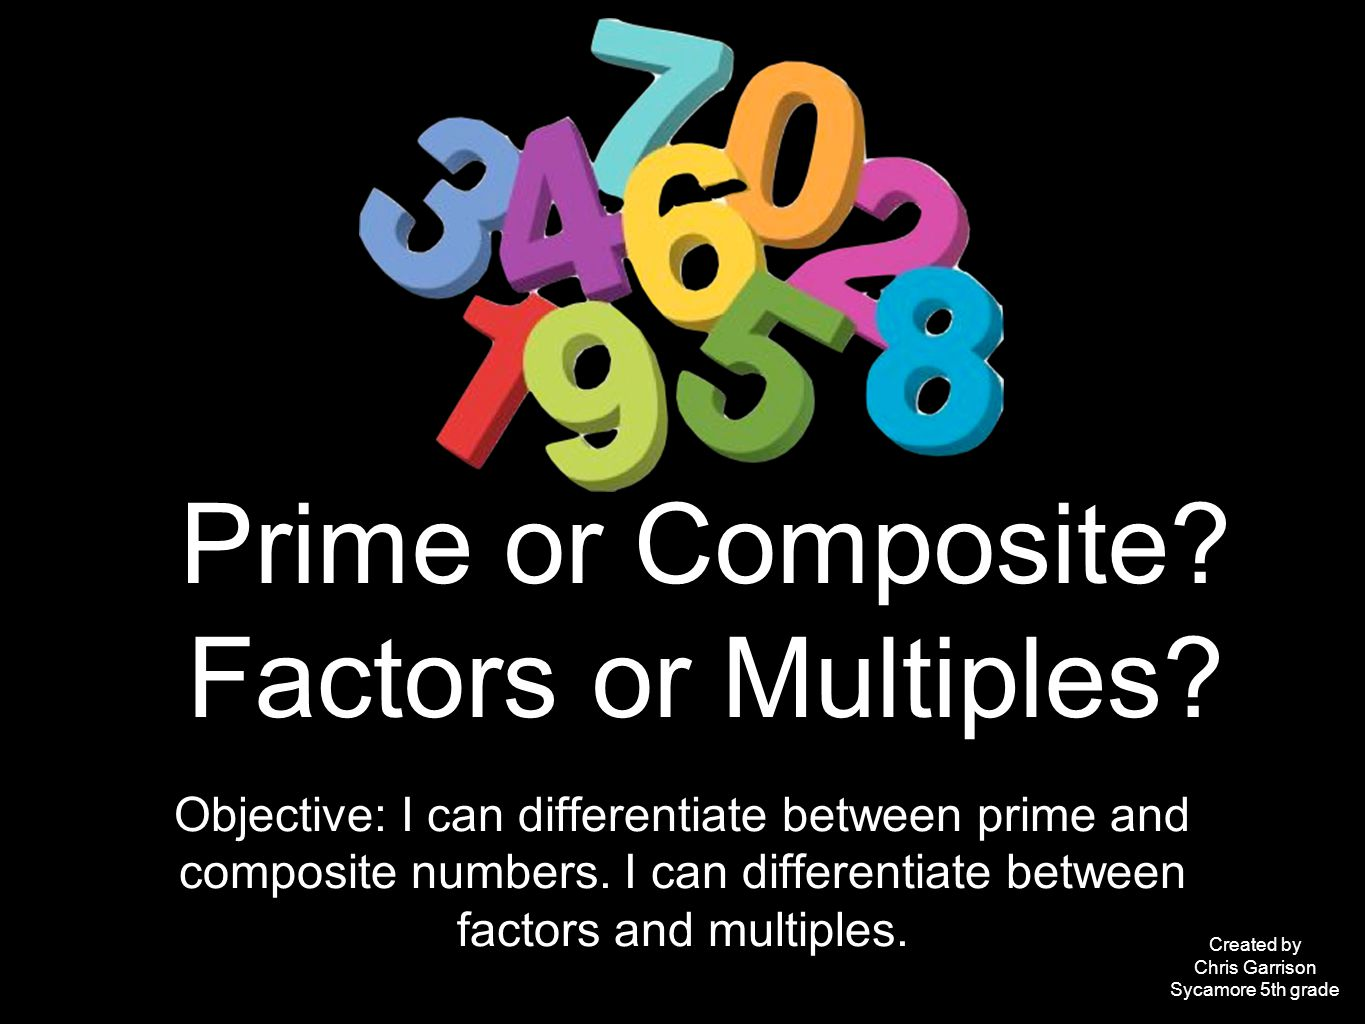 Prime or Composite Factors or Multiples